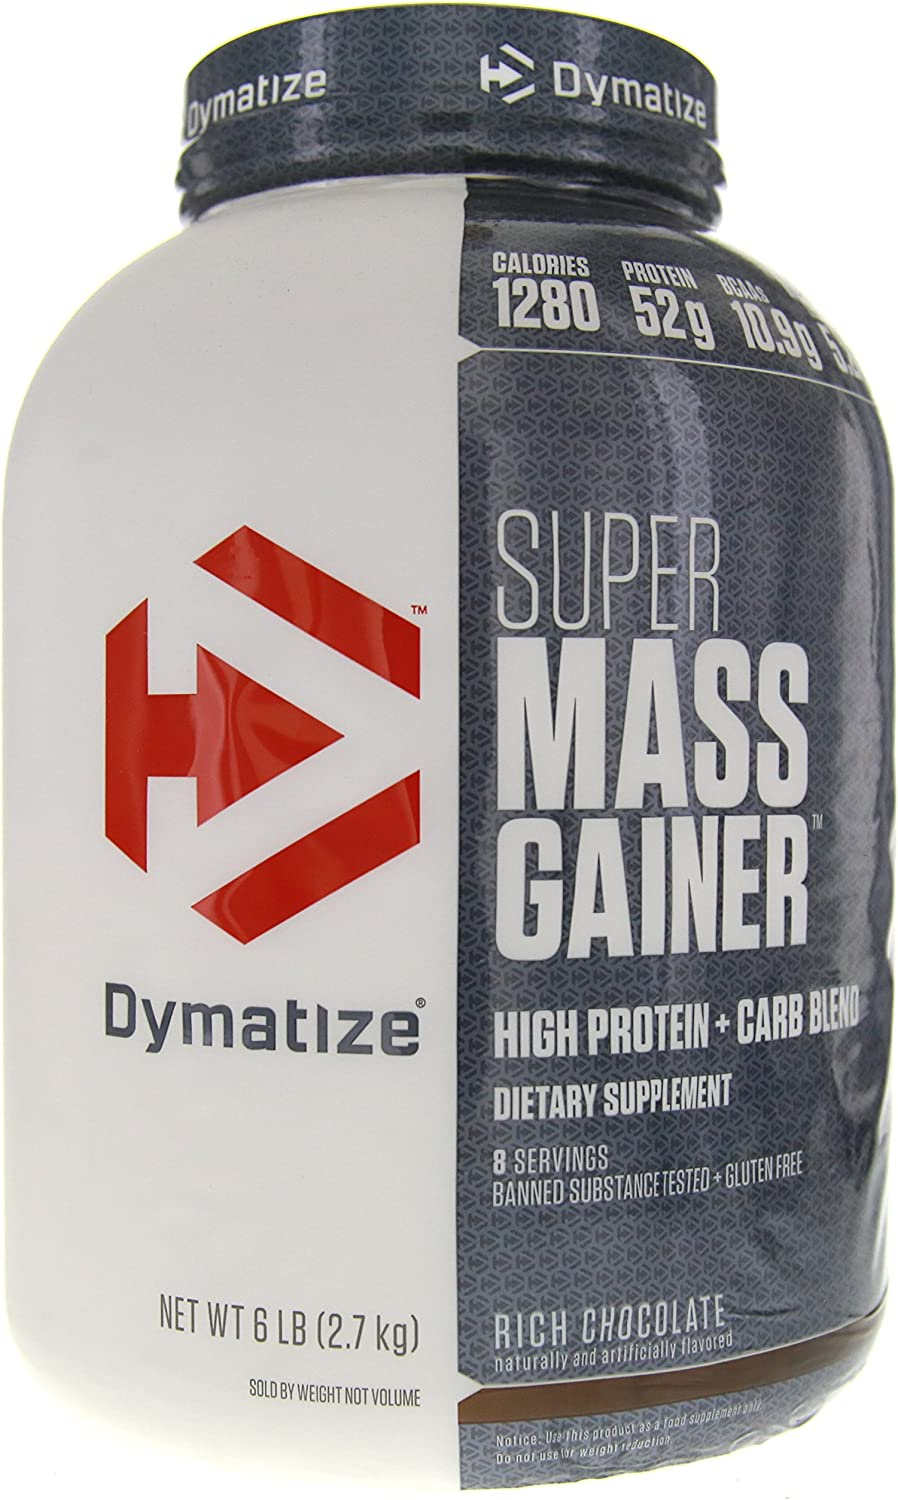 Dymatize Super Mass Gainer Protein